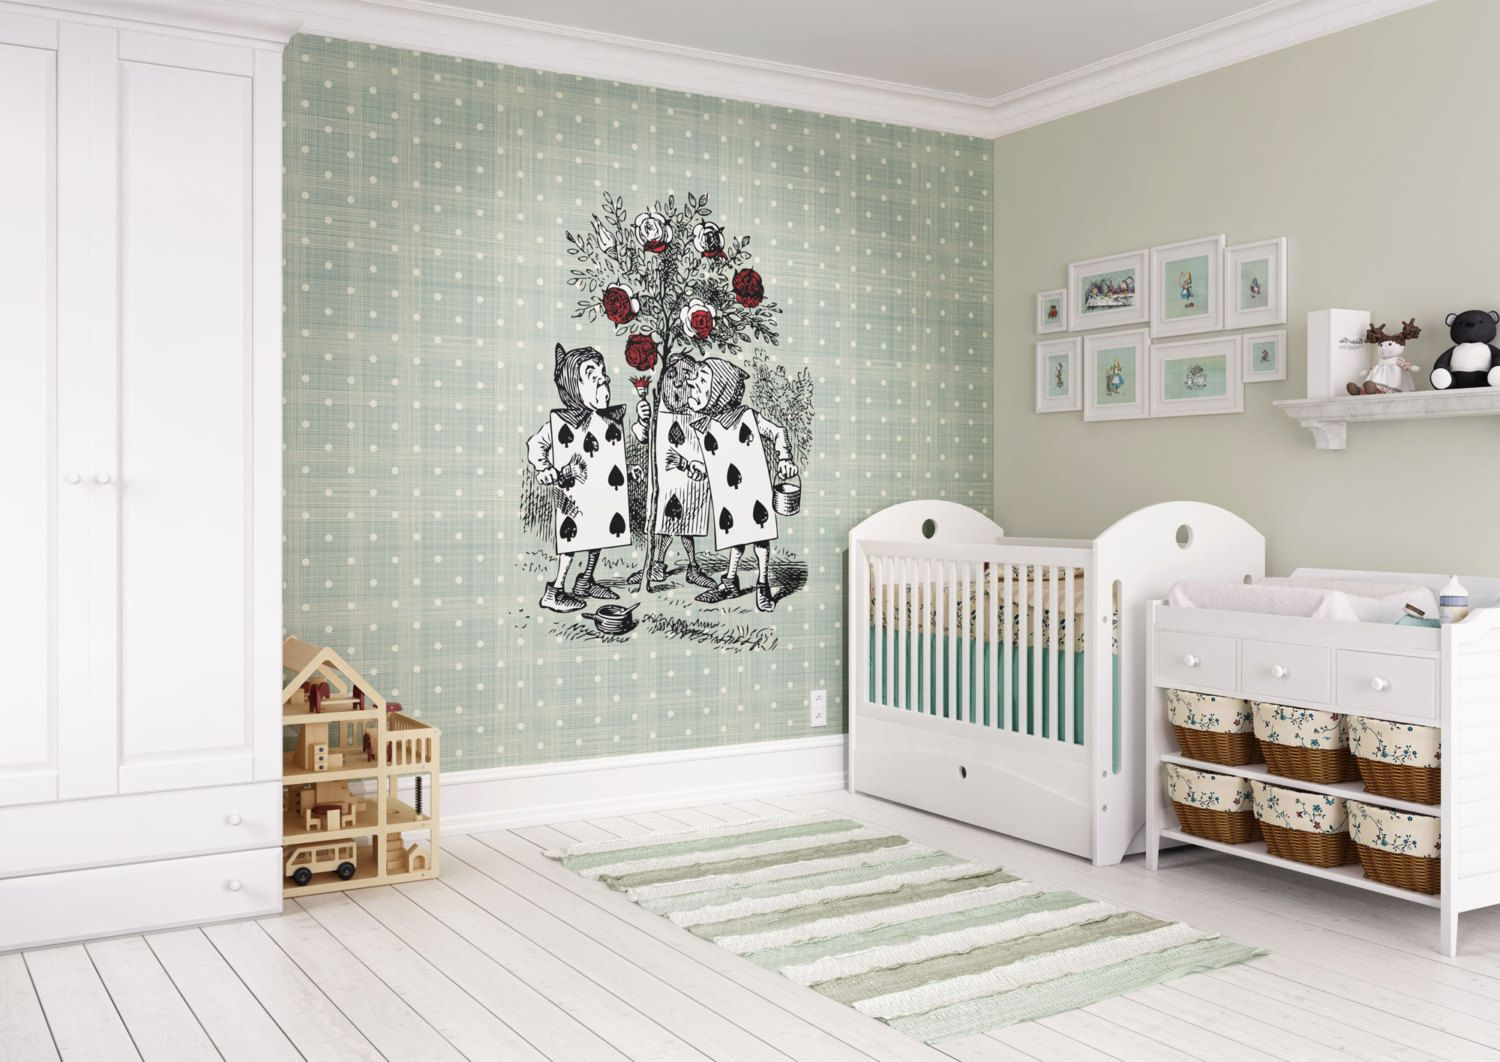 Best Large 3060Mm X 2448Mm In 2020 Childrens Wall Murals 400 x 300